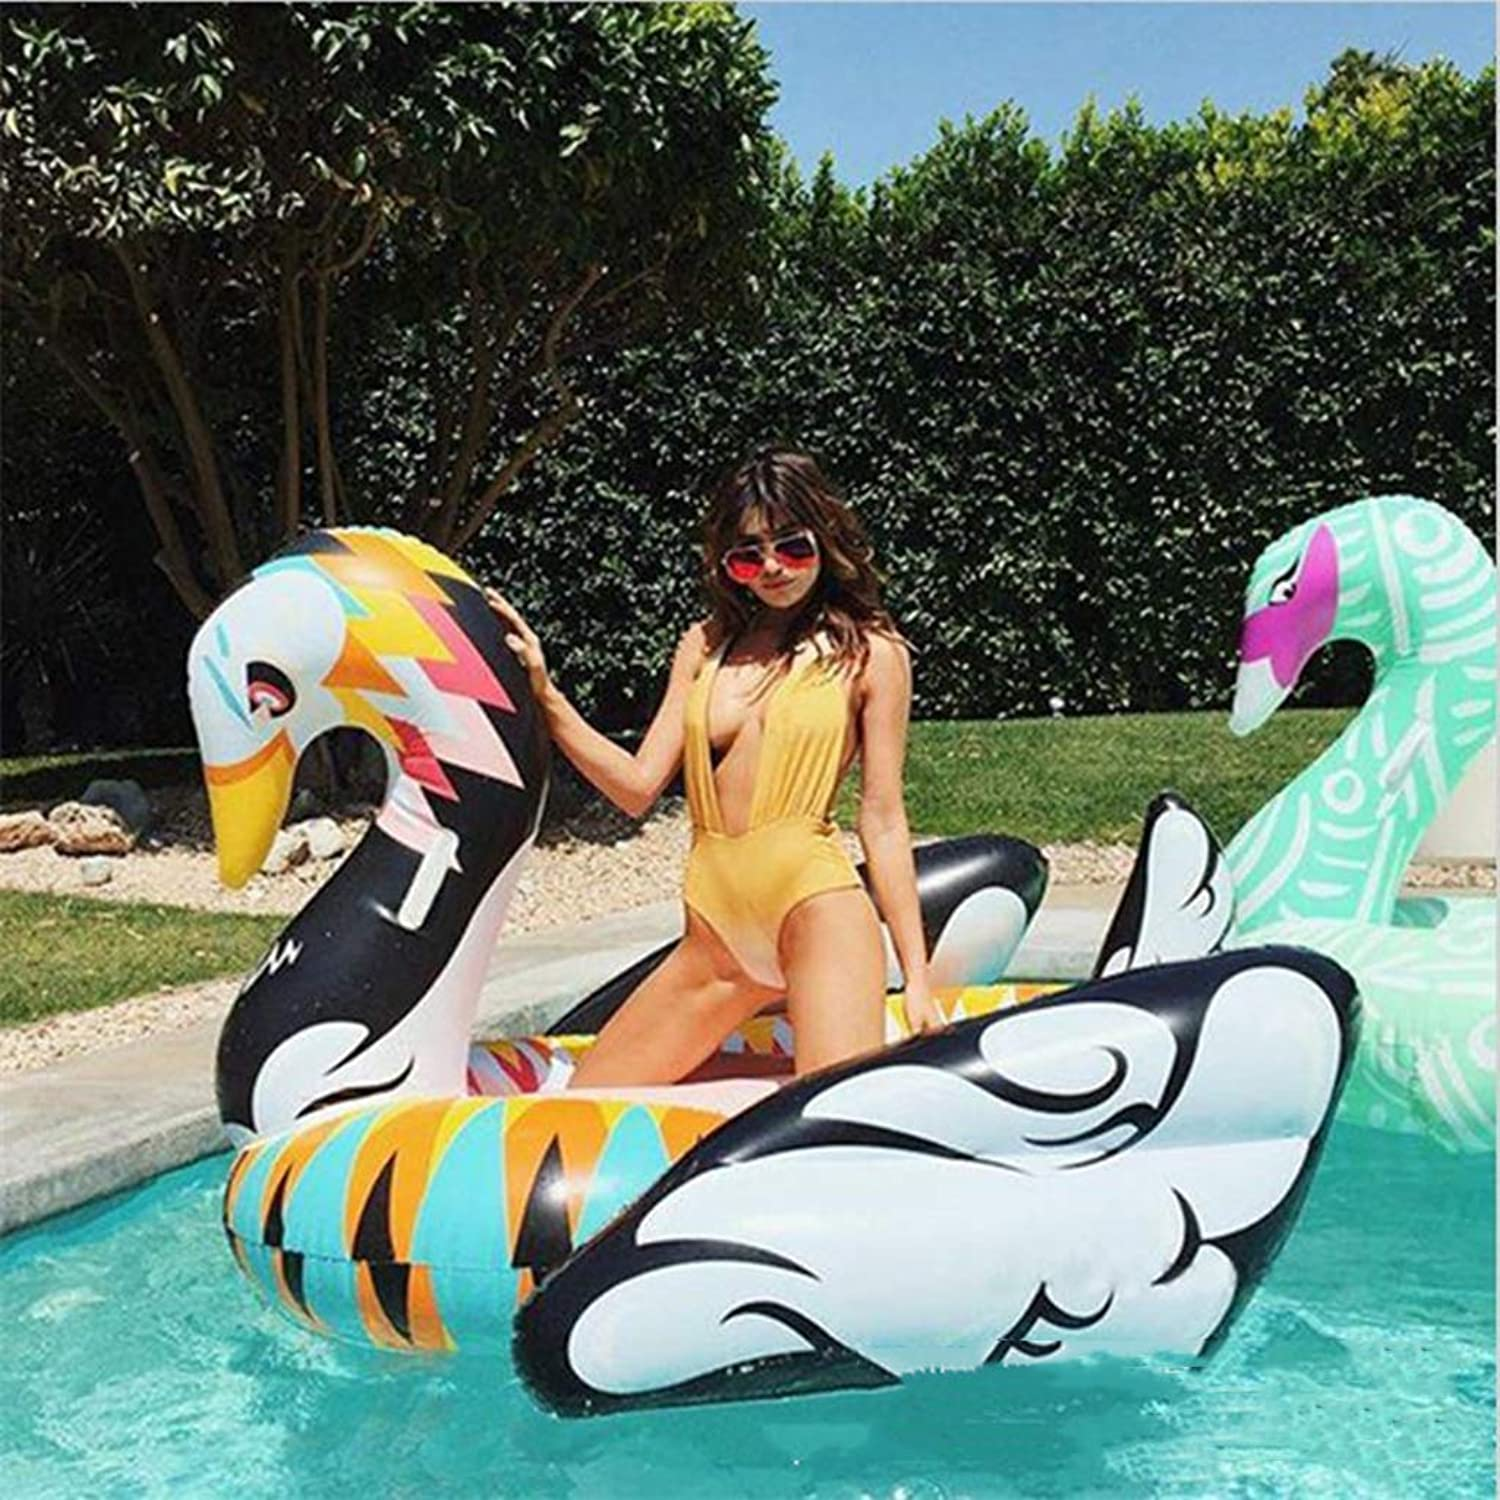 Pool Float Inflatable Pool Toys Giant Black and White golden Swan Floating Island Summer Toy Pool Party Toy with Rapid Valves for Adults and Kids